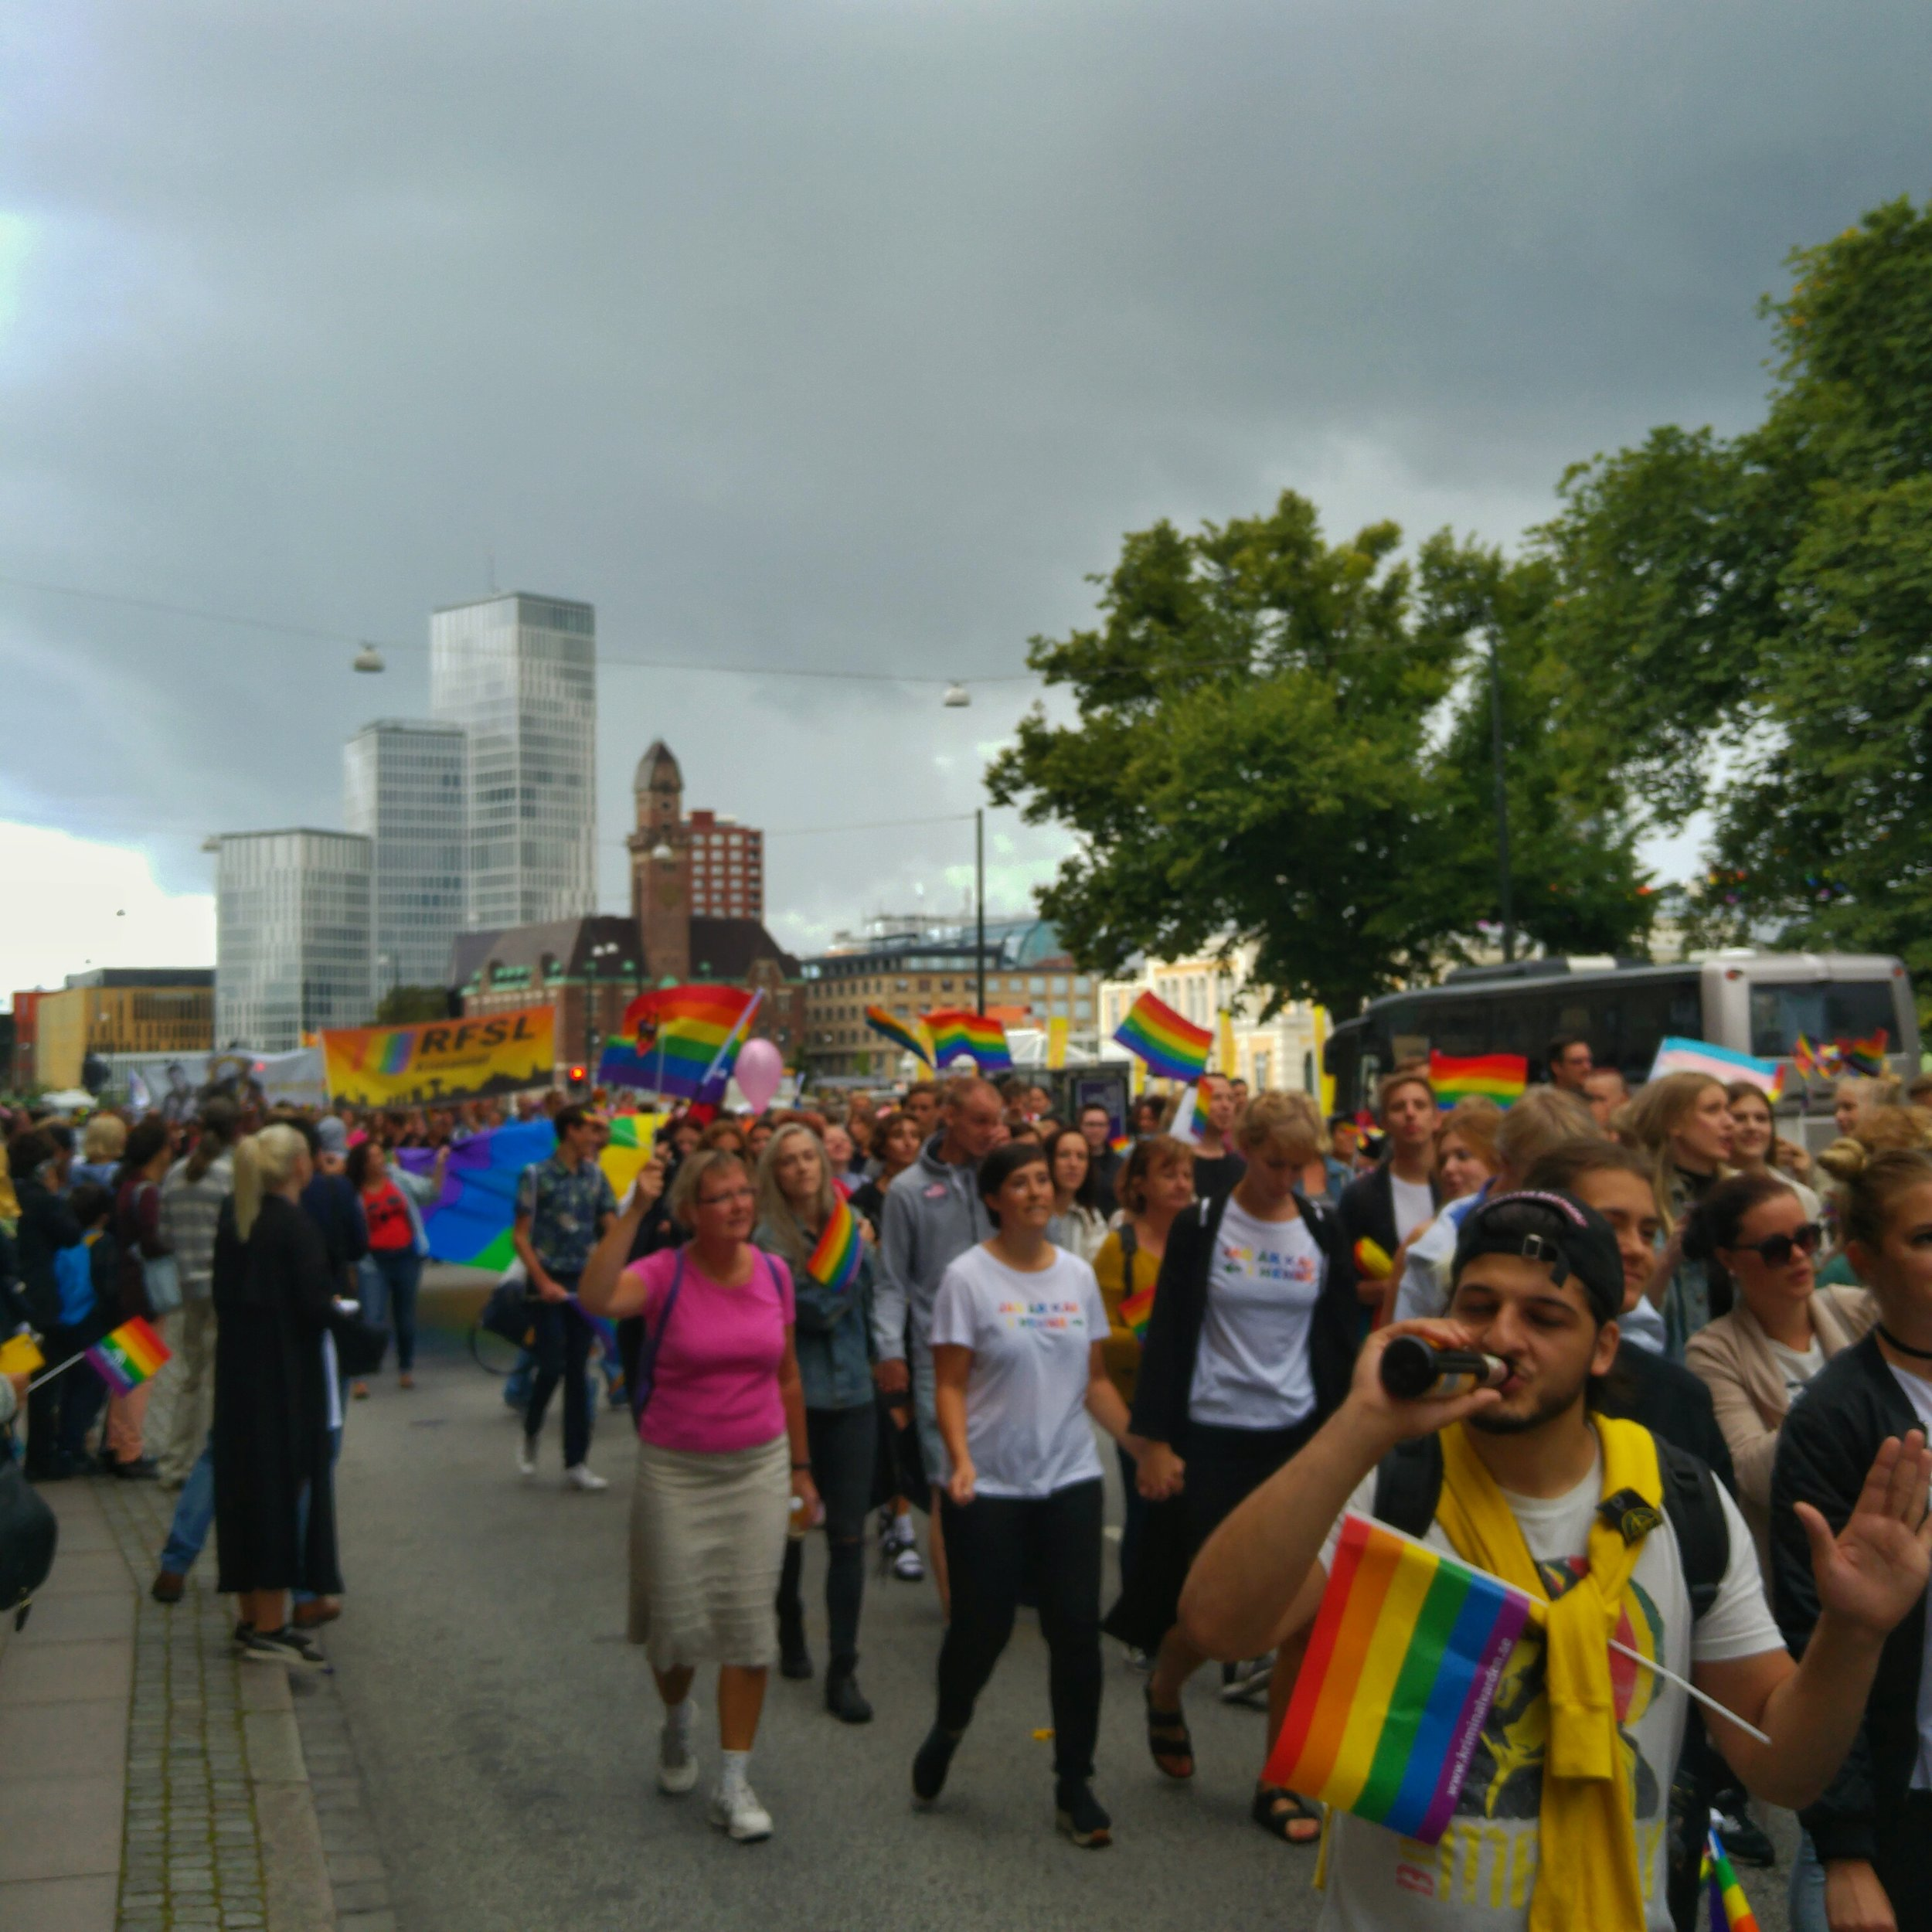 August 6 - Day 219: Pride in Malmö